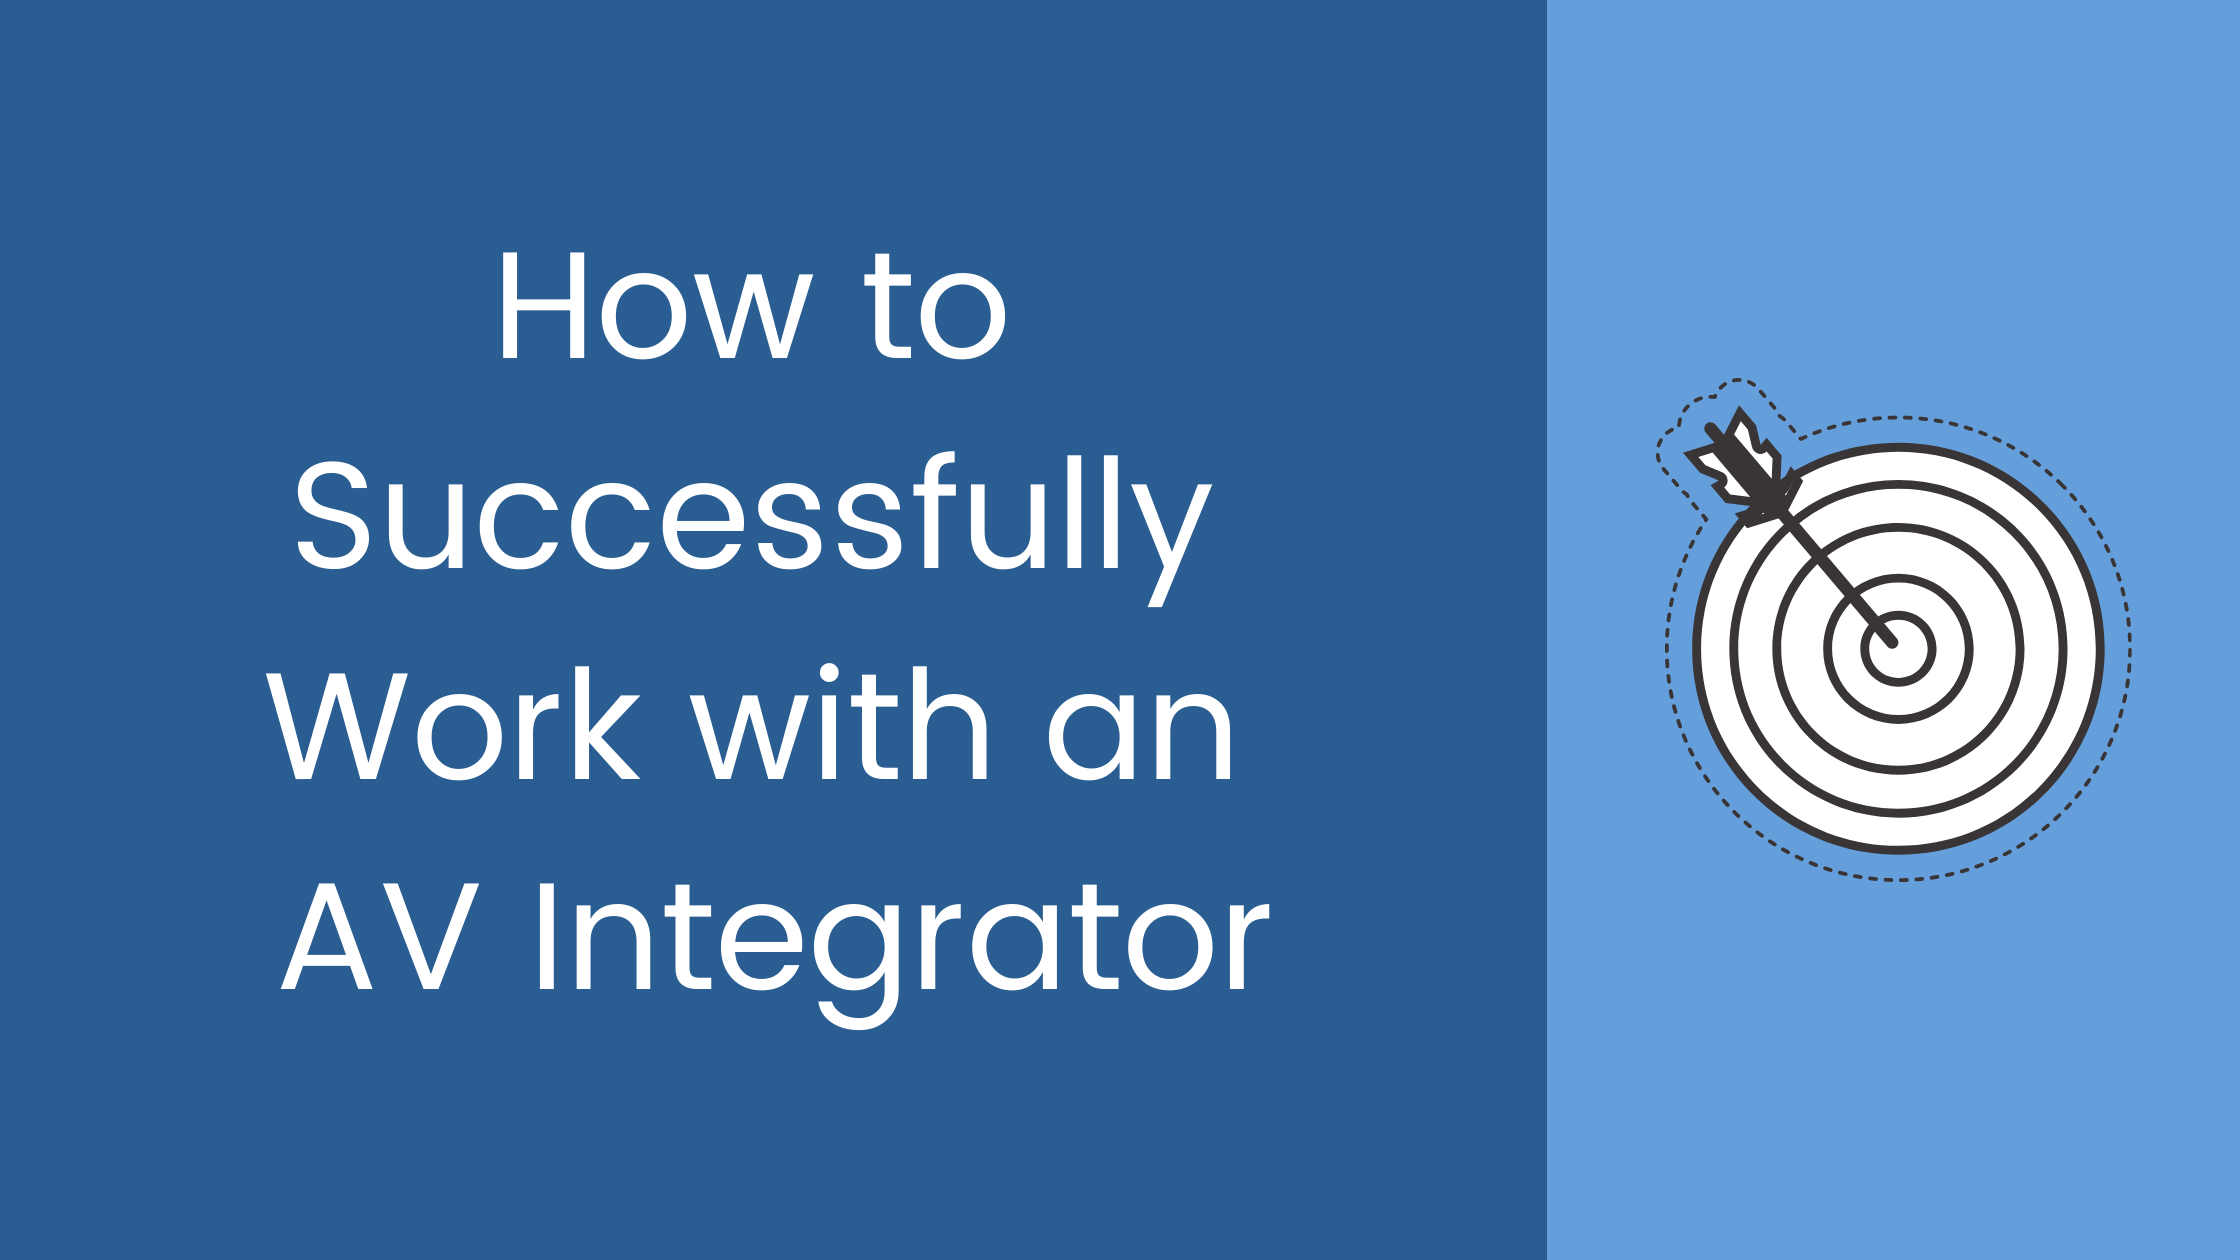 Successfully work with an AV Integrator